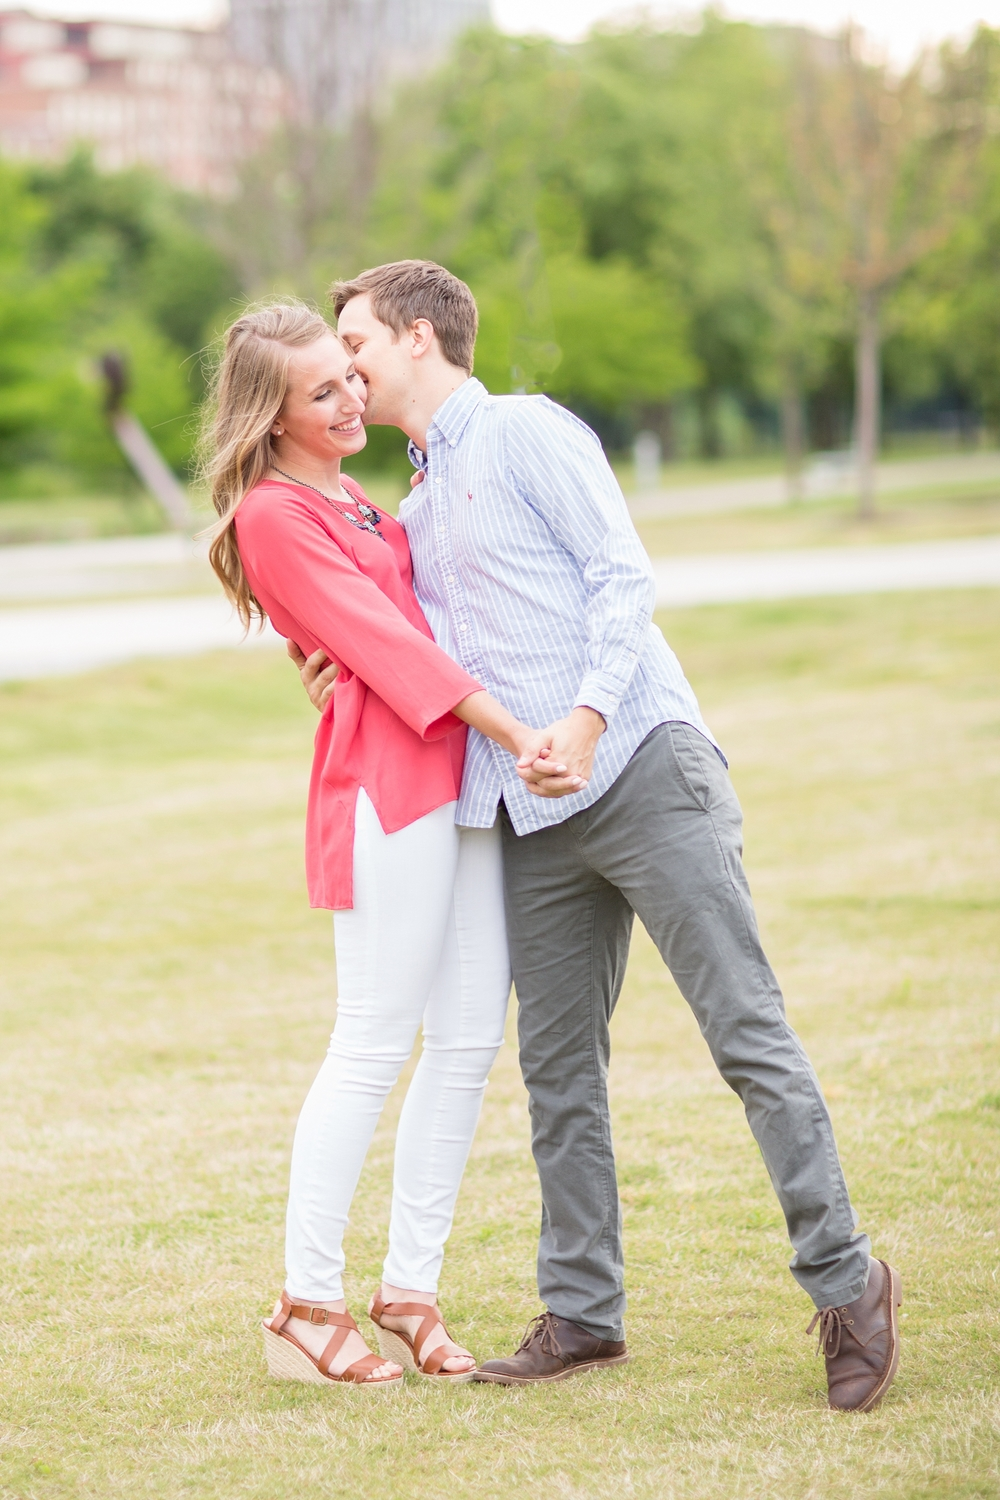 Erin & Jackson Engagement-371_anna grace photography nashville tennessee engagement photographer destination photographer photo.jpg